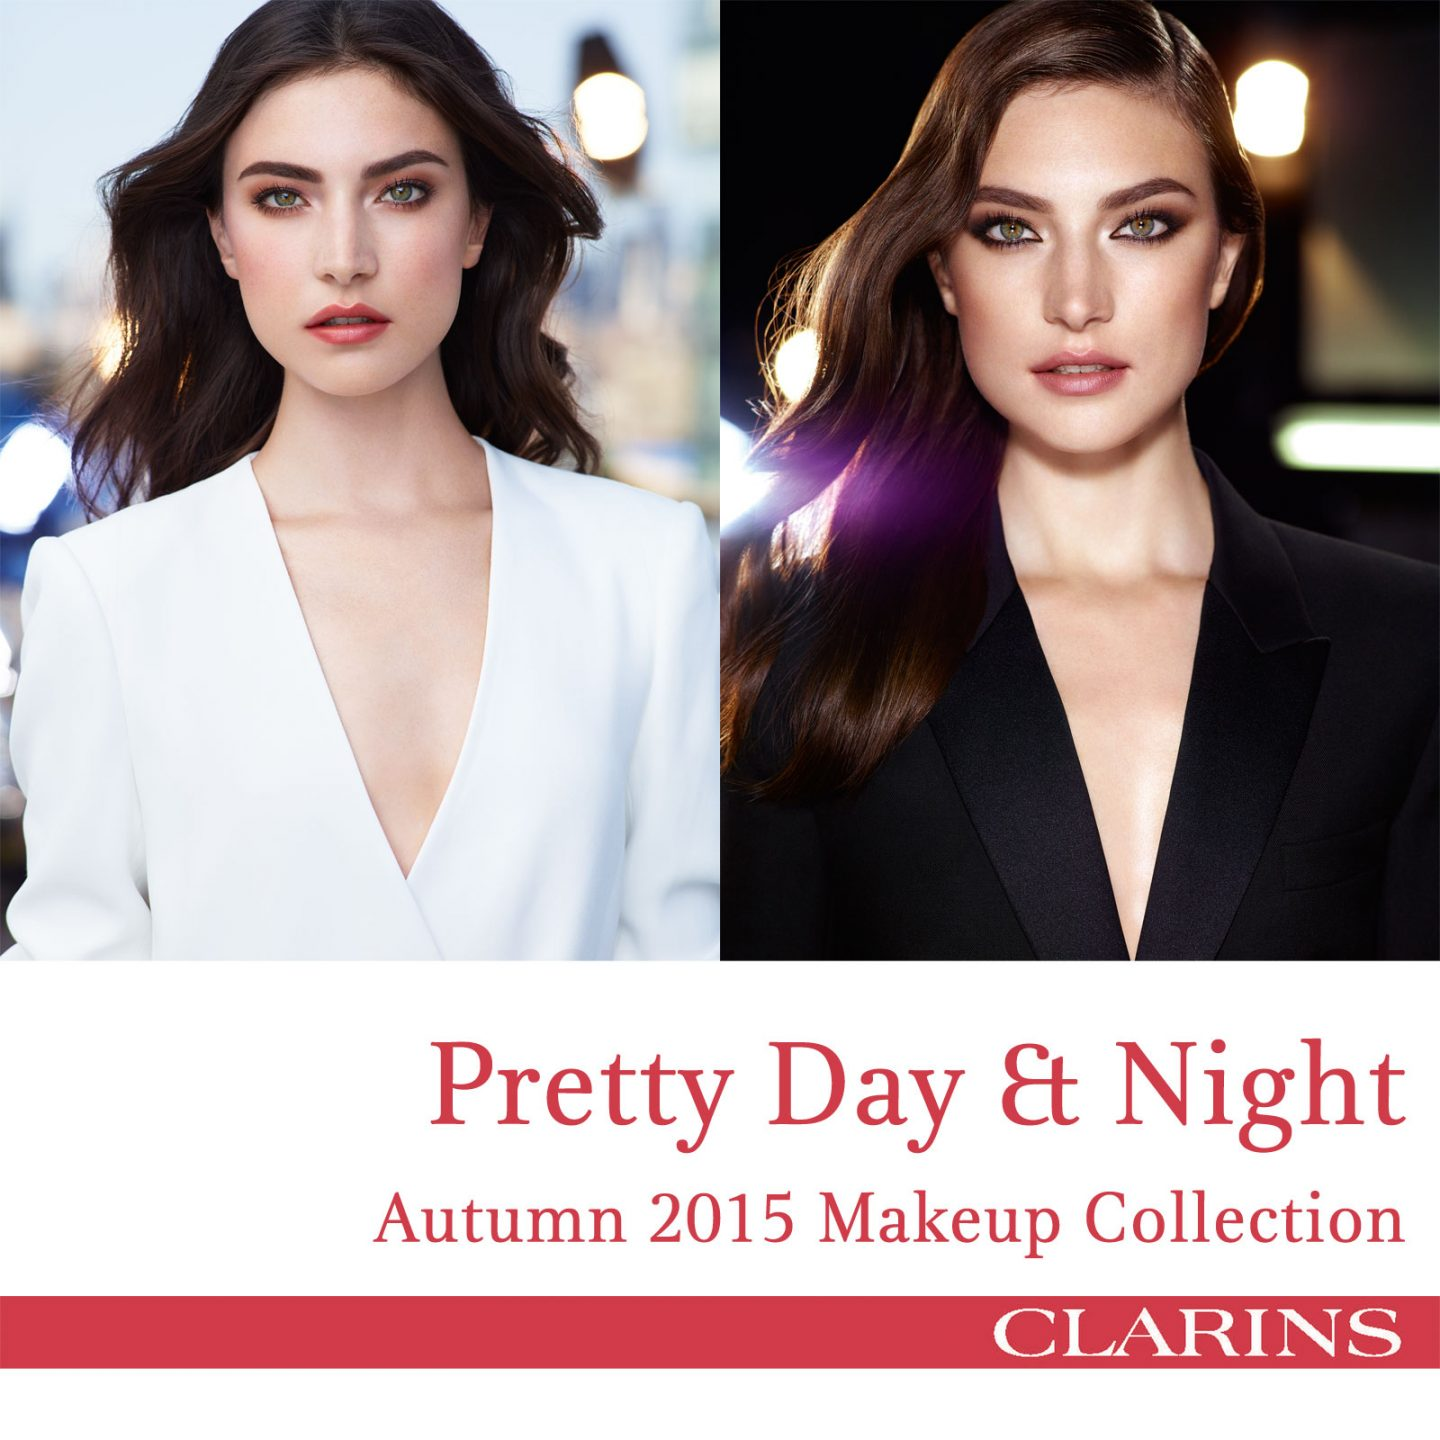 Clarins Autumn 2015 Collection – Pretty Day & Night